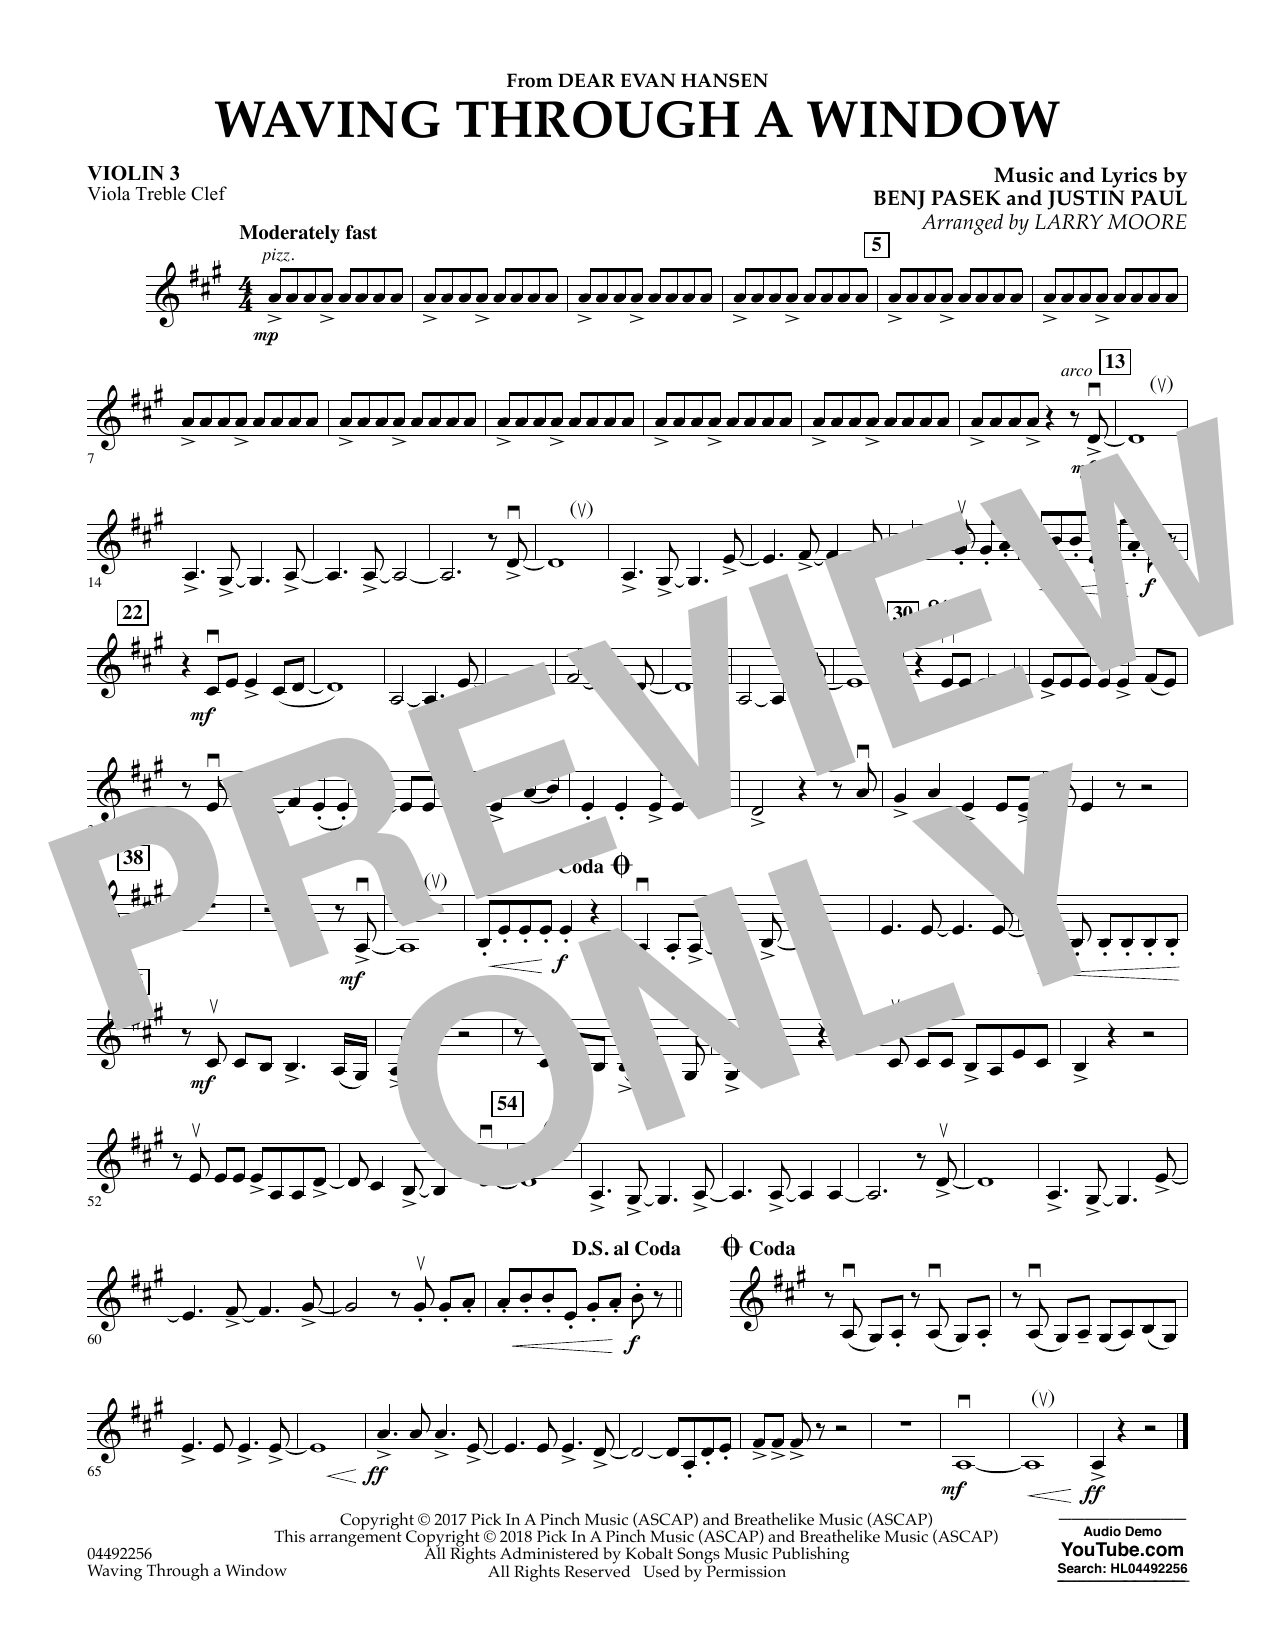 Pasek & Paul Waving Through a Window (from Dear Evan Hansen) (arr. Larry Moore) - Violin 3 (Viola Treble Clef) sheet music preview music notes and score for Orchestra including 1 page(s)